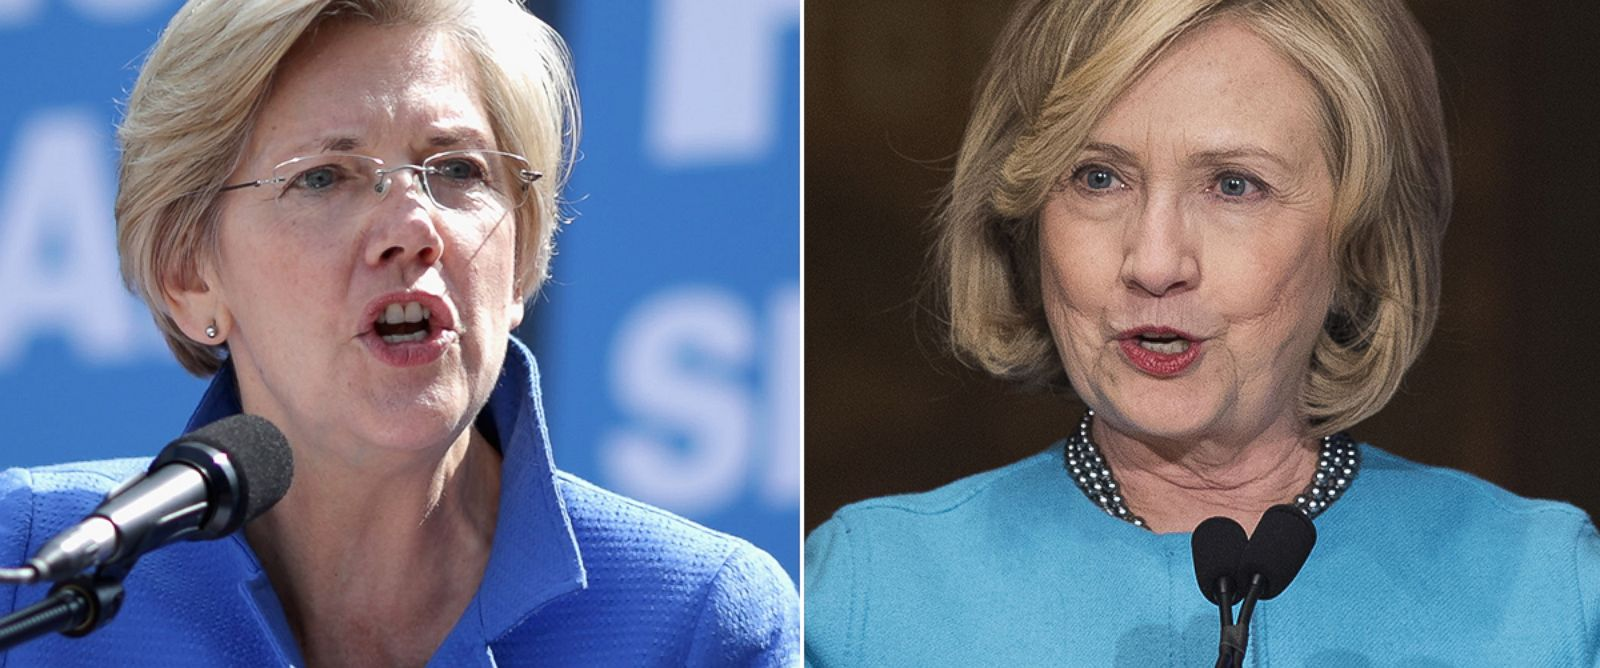 PHOTO: Elizabeth Warren, left, is pictured on Sept. 18, 2014 in Washington, D.C. Hillary Clinton, right, is pictured on Dec. 3, 2014 in Washington, D.C.